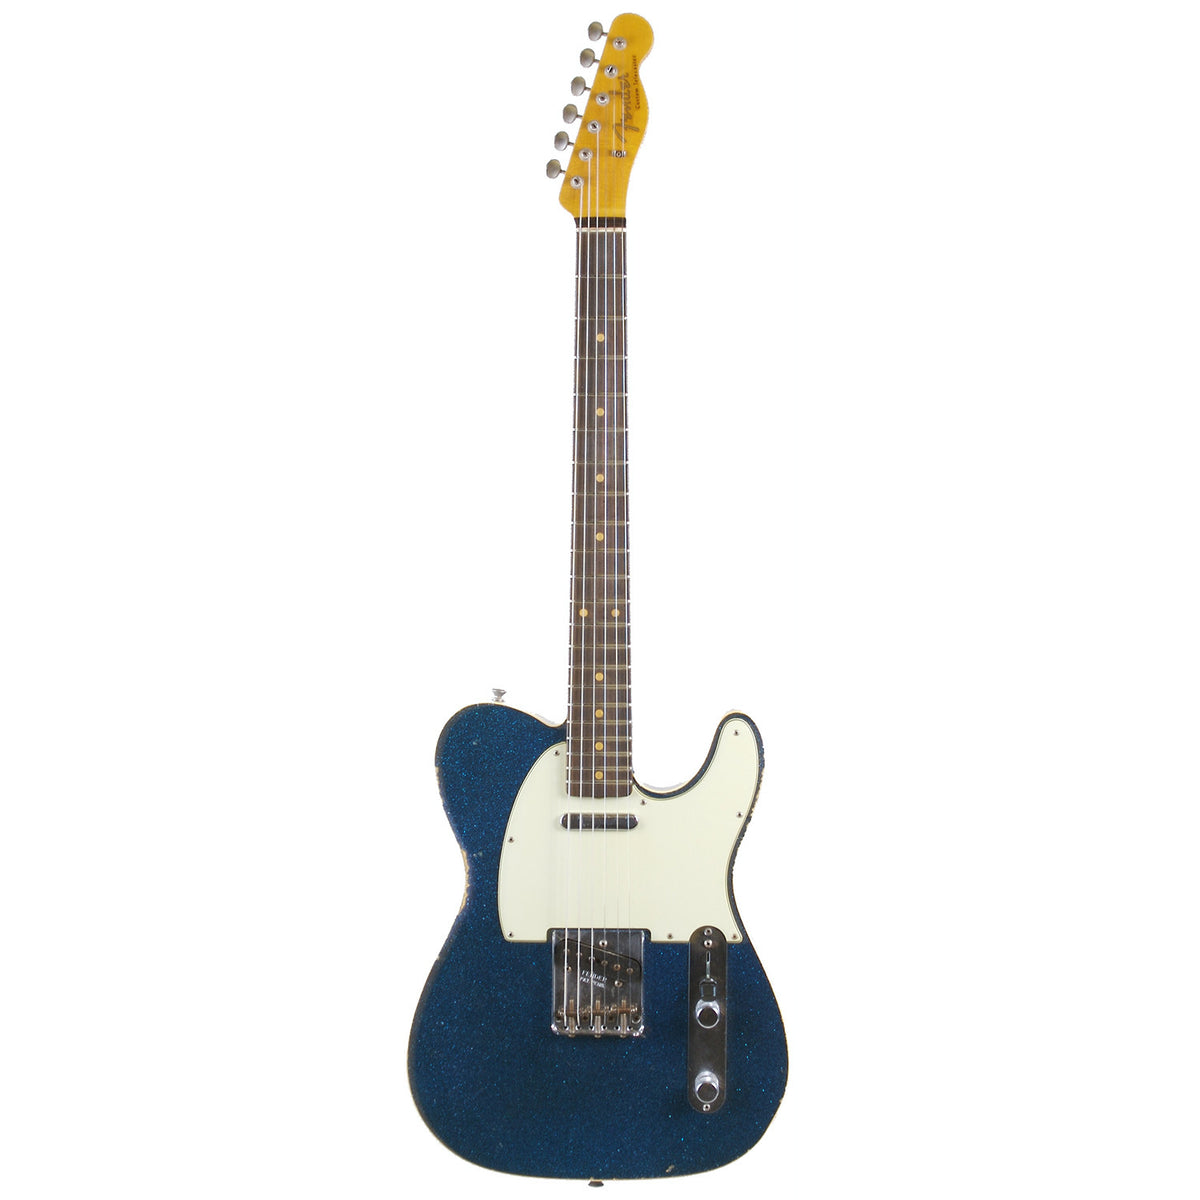 Fender Custom Shop Blue Sparkle '60 Telecaster Custom Relic - Garrett Park Guitars  - 3